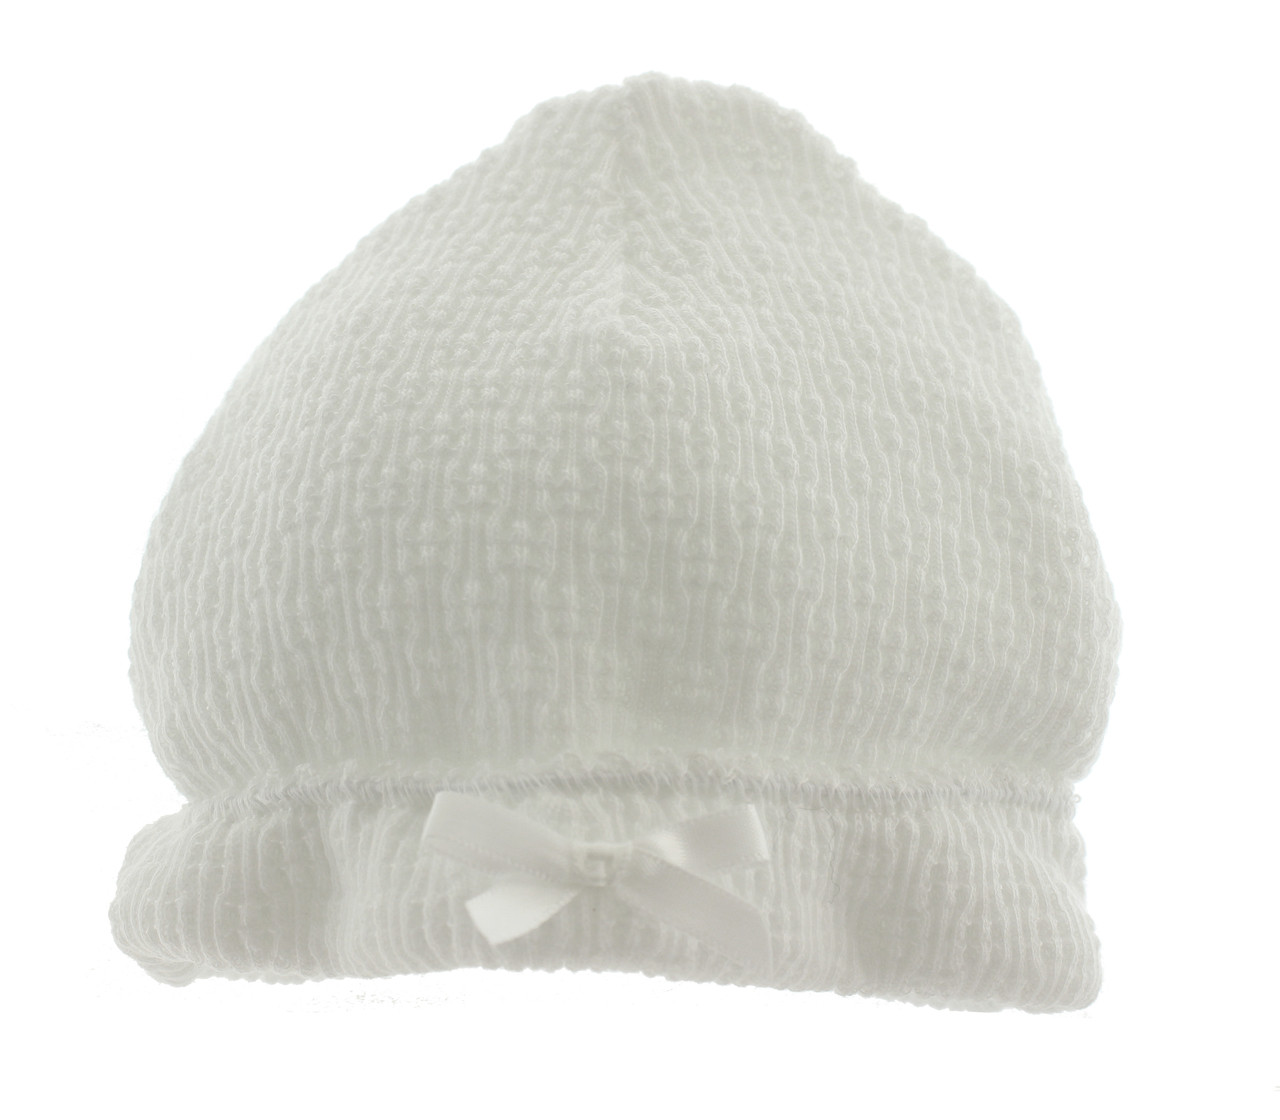 9dc98b29125 Paty Inc White Knitted Hat Unisex. Click to enlarge